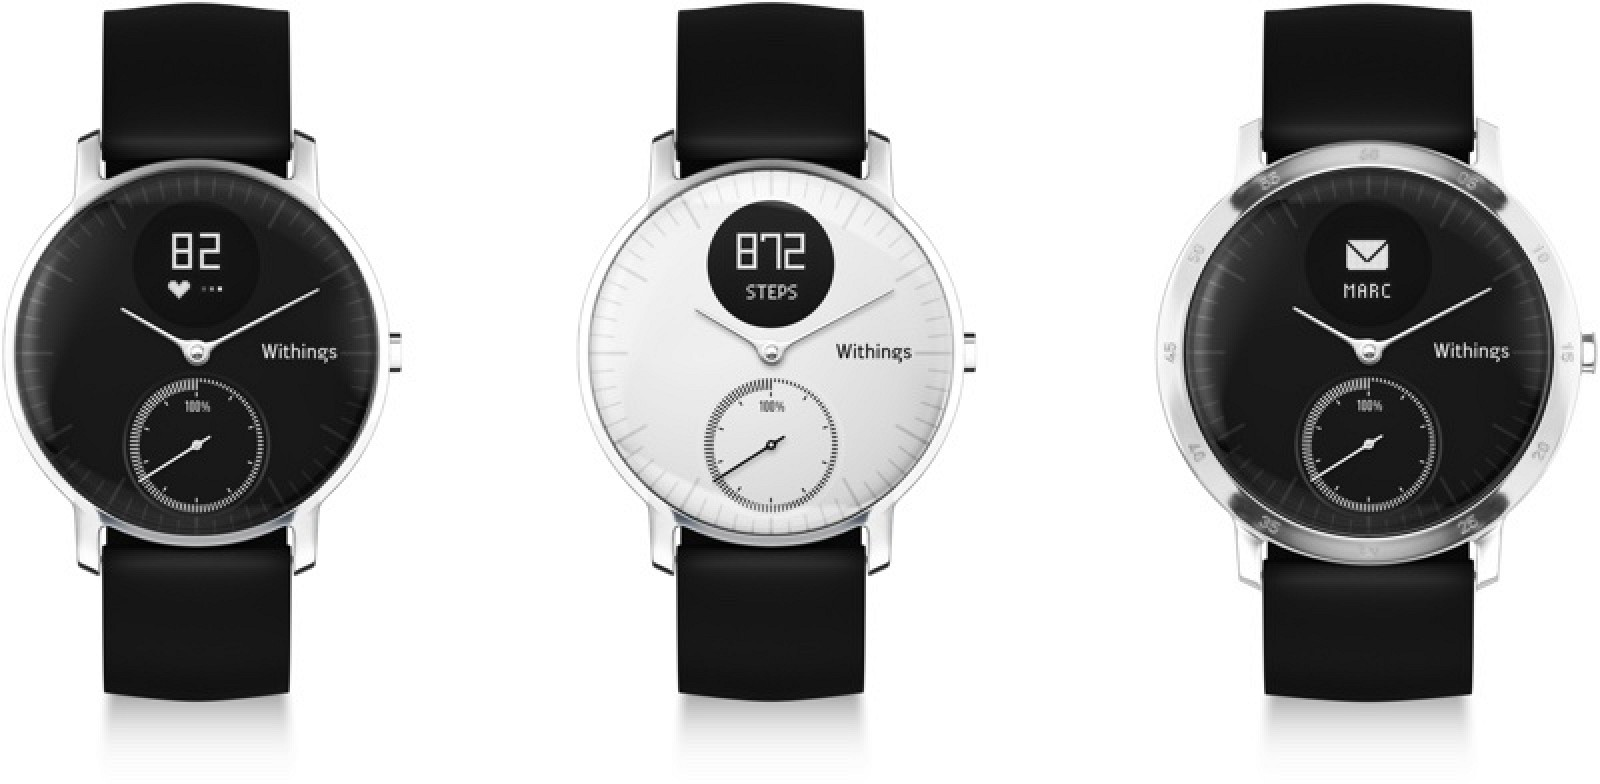 Black Friday Car Deals >> Withings Debuts New 'Steel HR' Activity Tracker With Heart Rate Monitoring - MacRumors